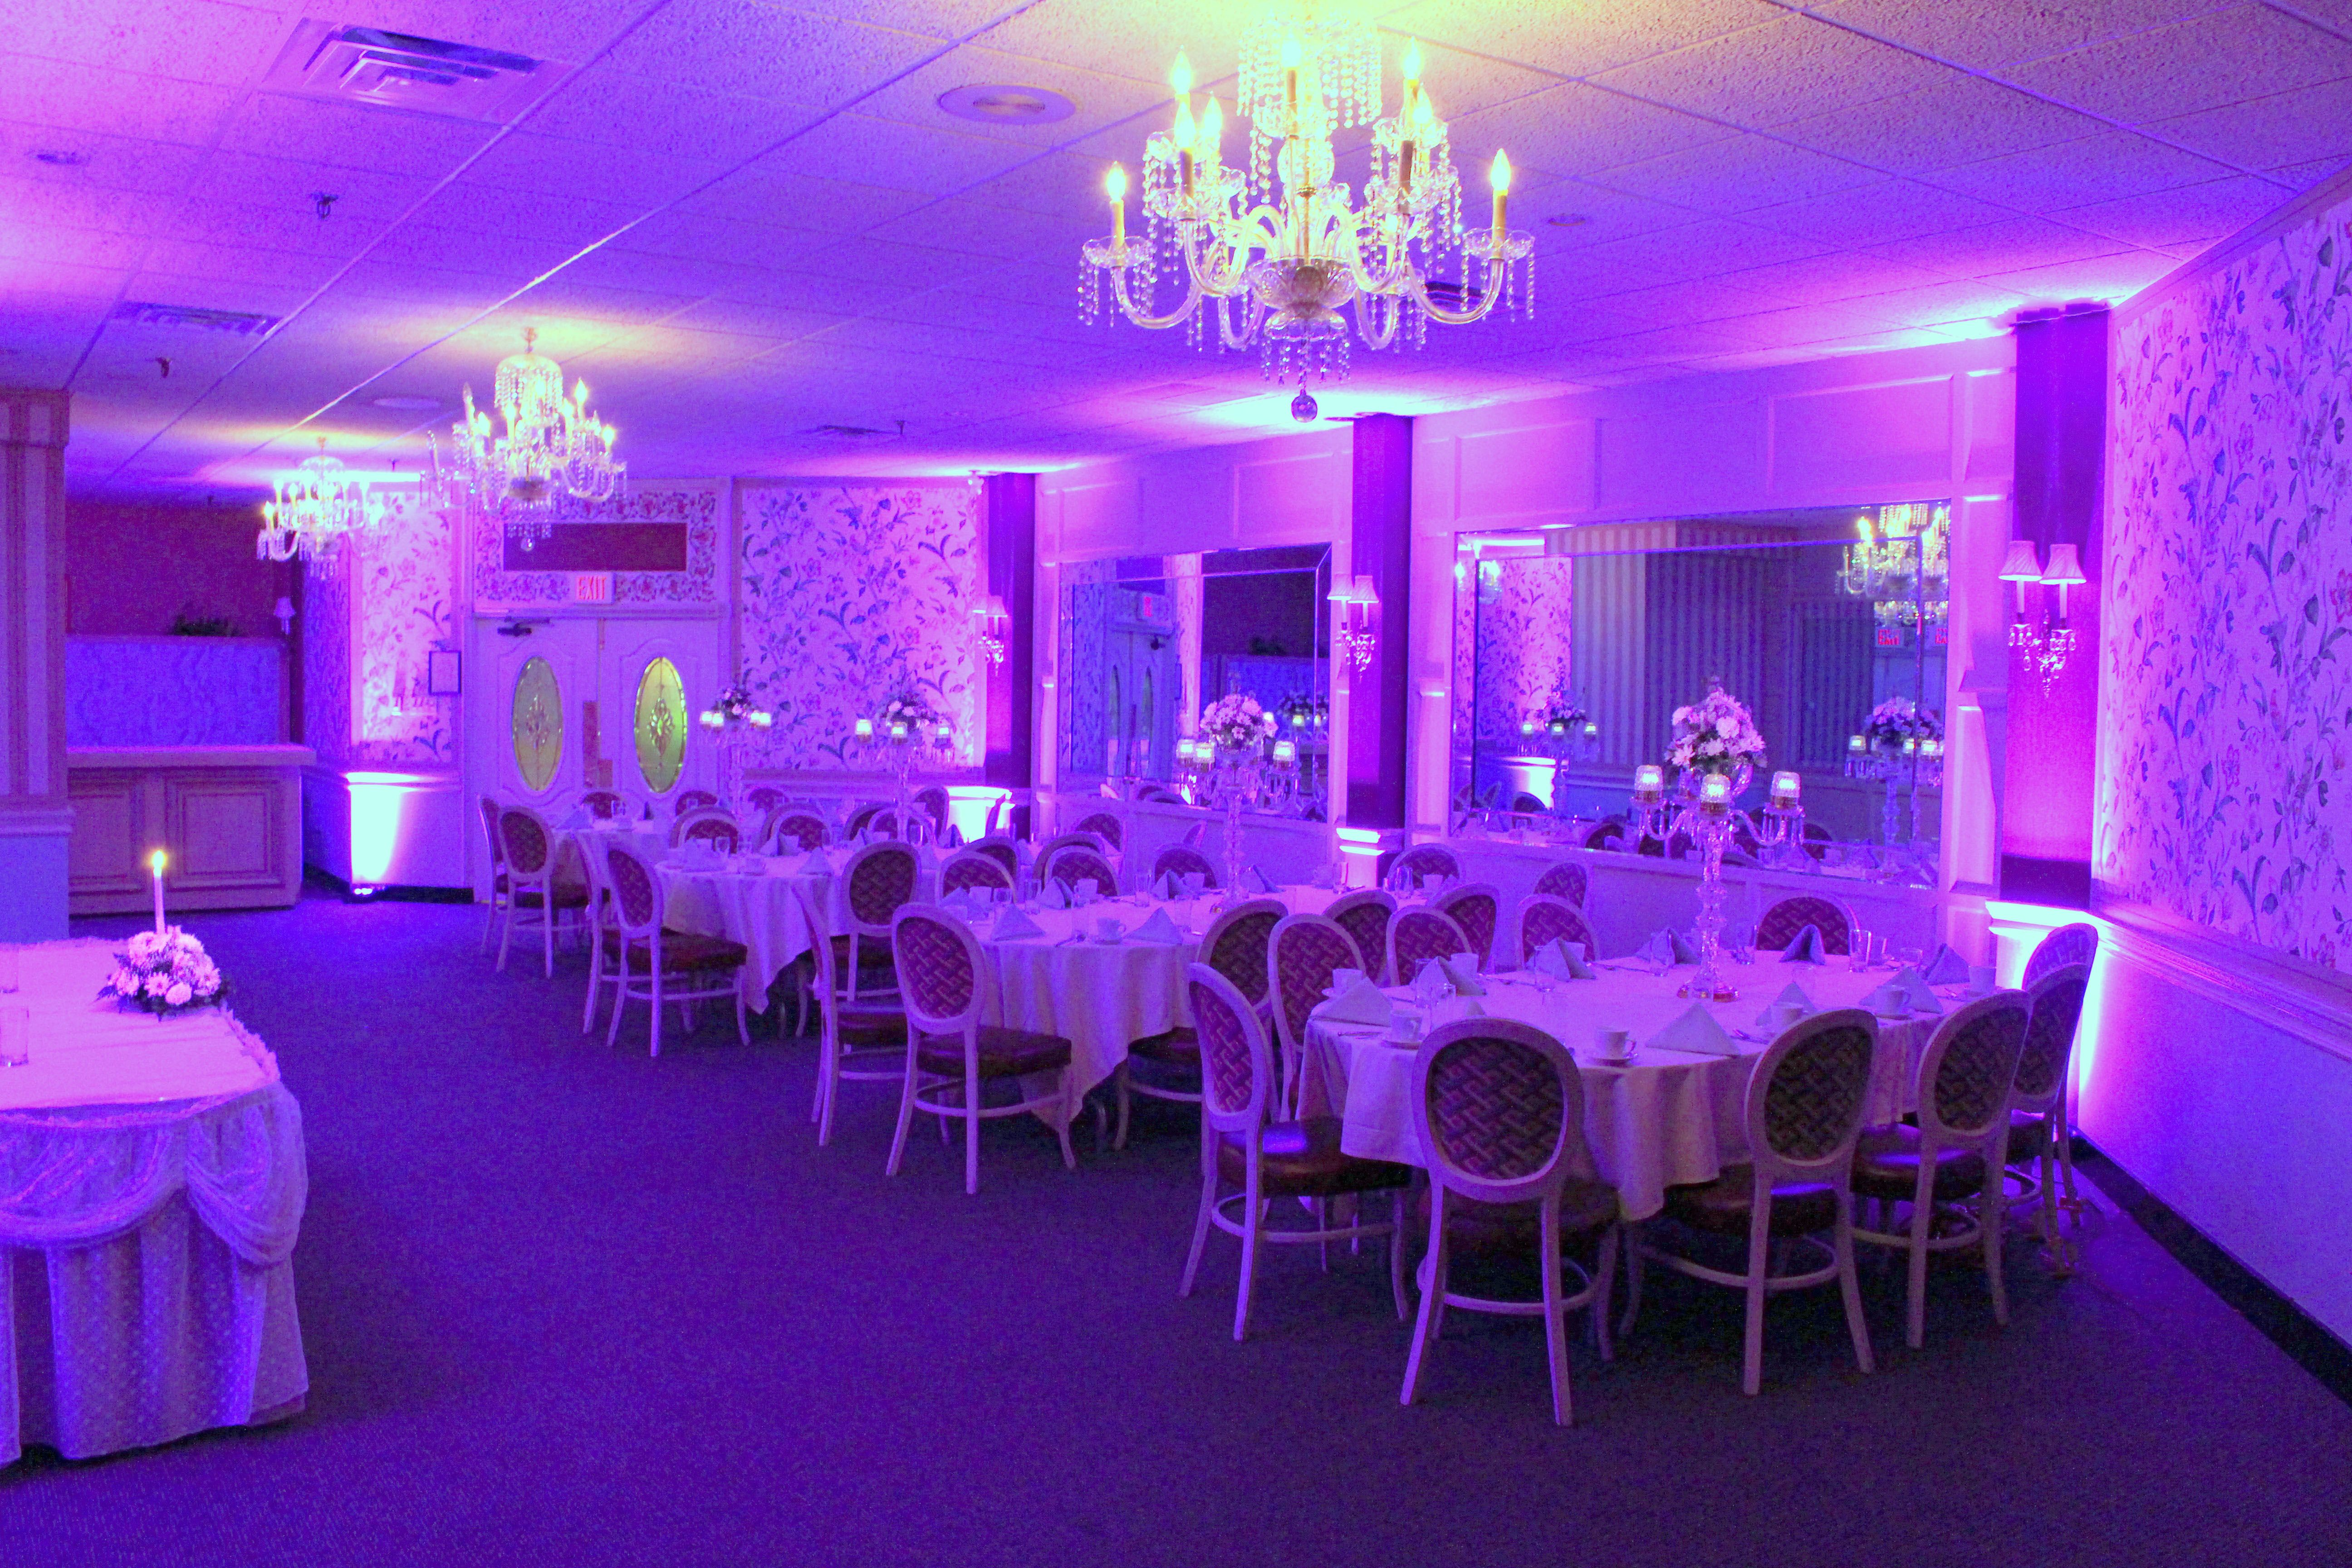 Sanctuary set for an Intimate Wedding with complimentary uplighting in the Bride's choice of color